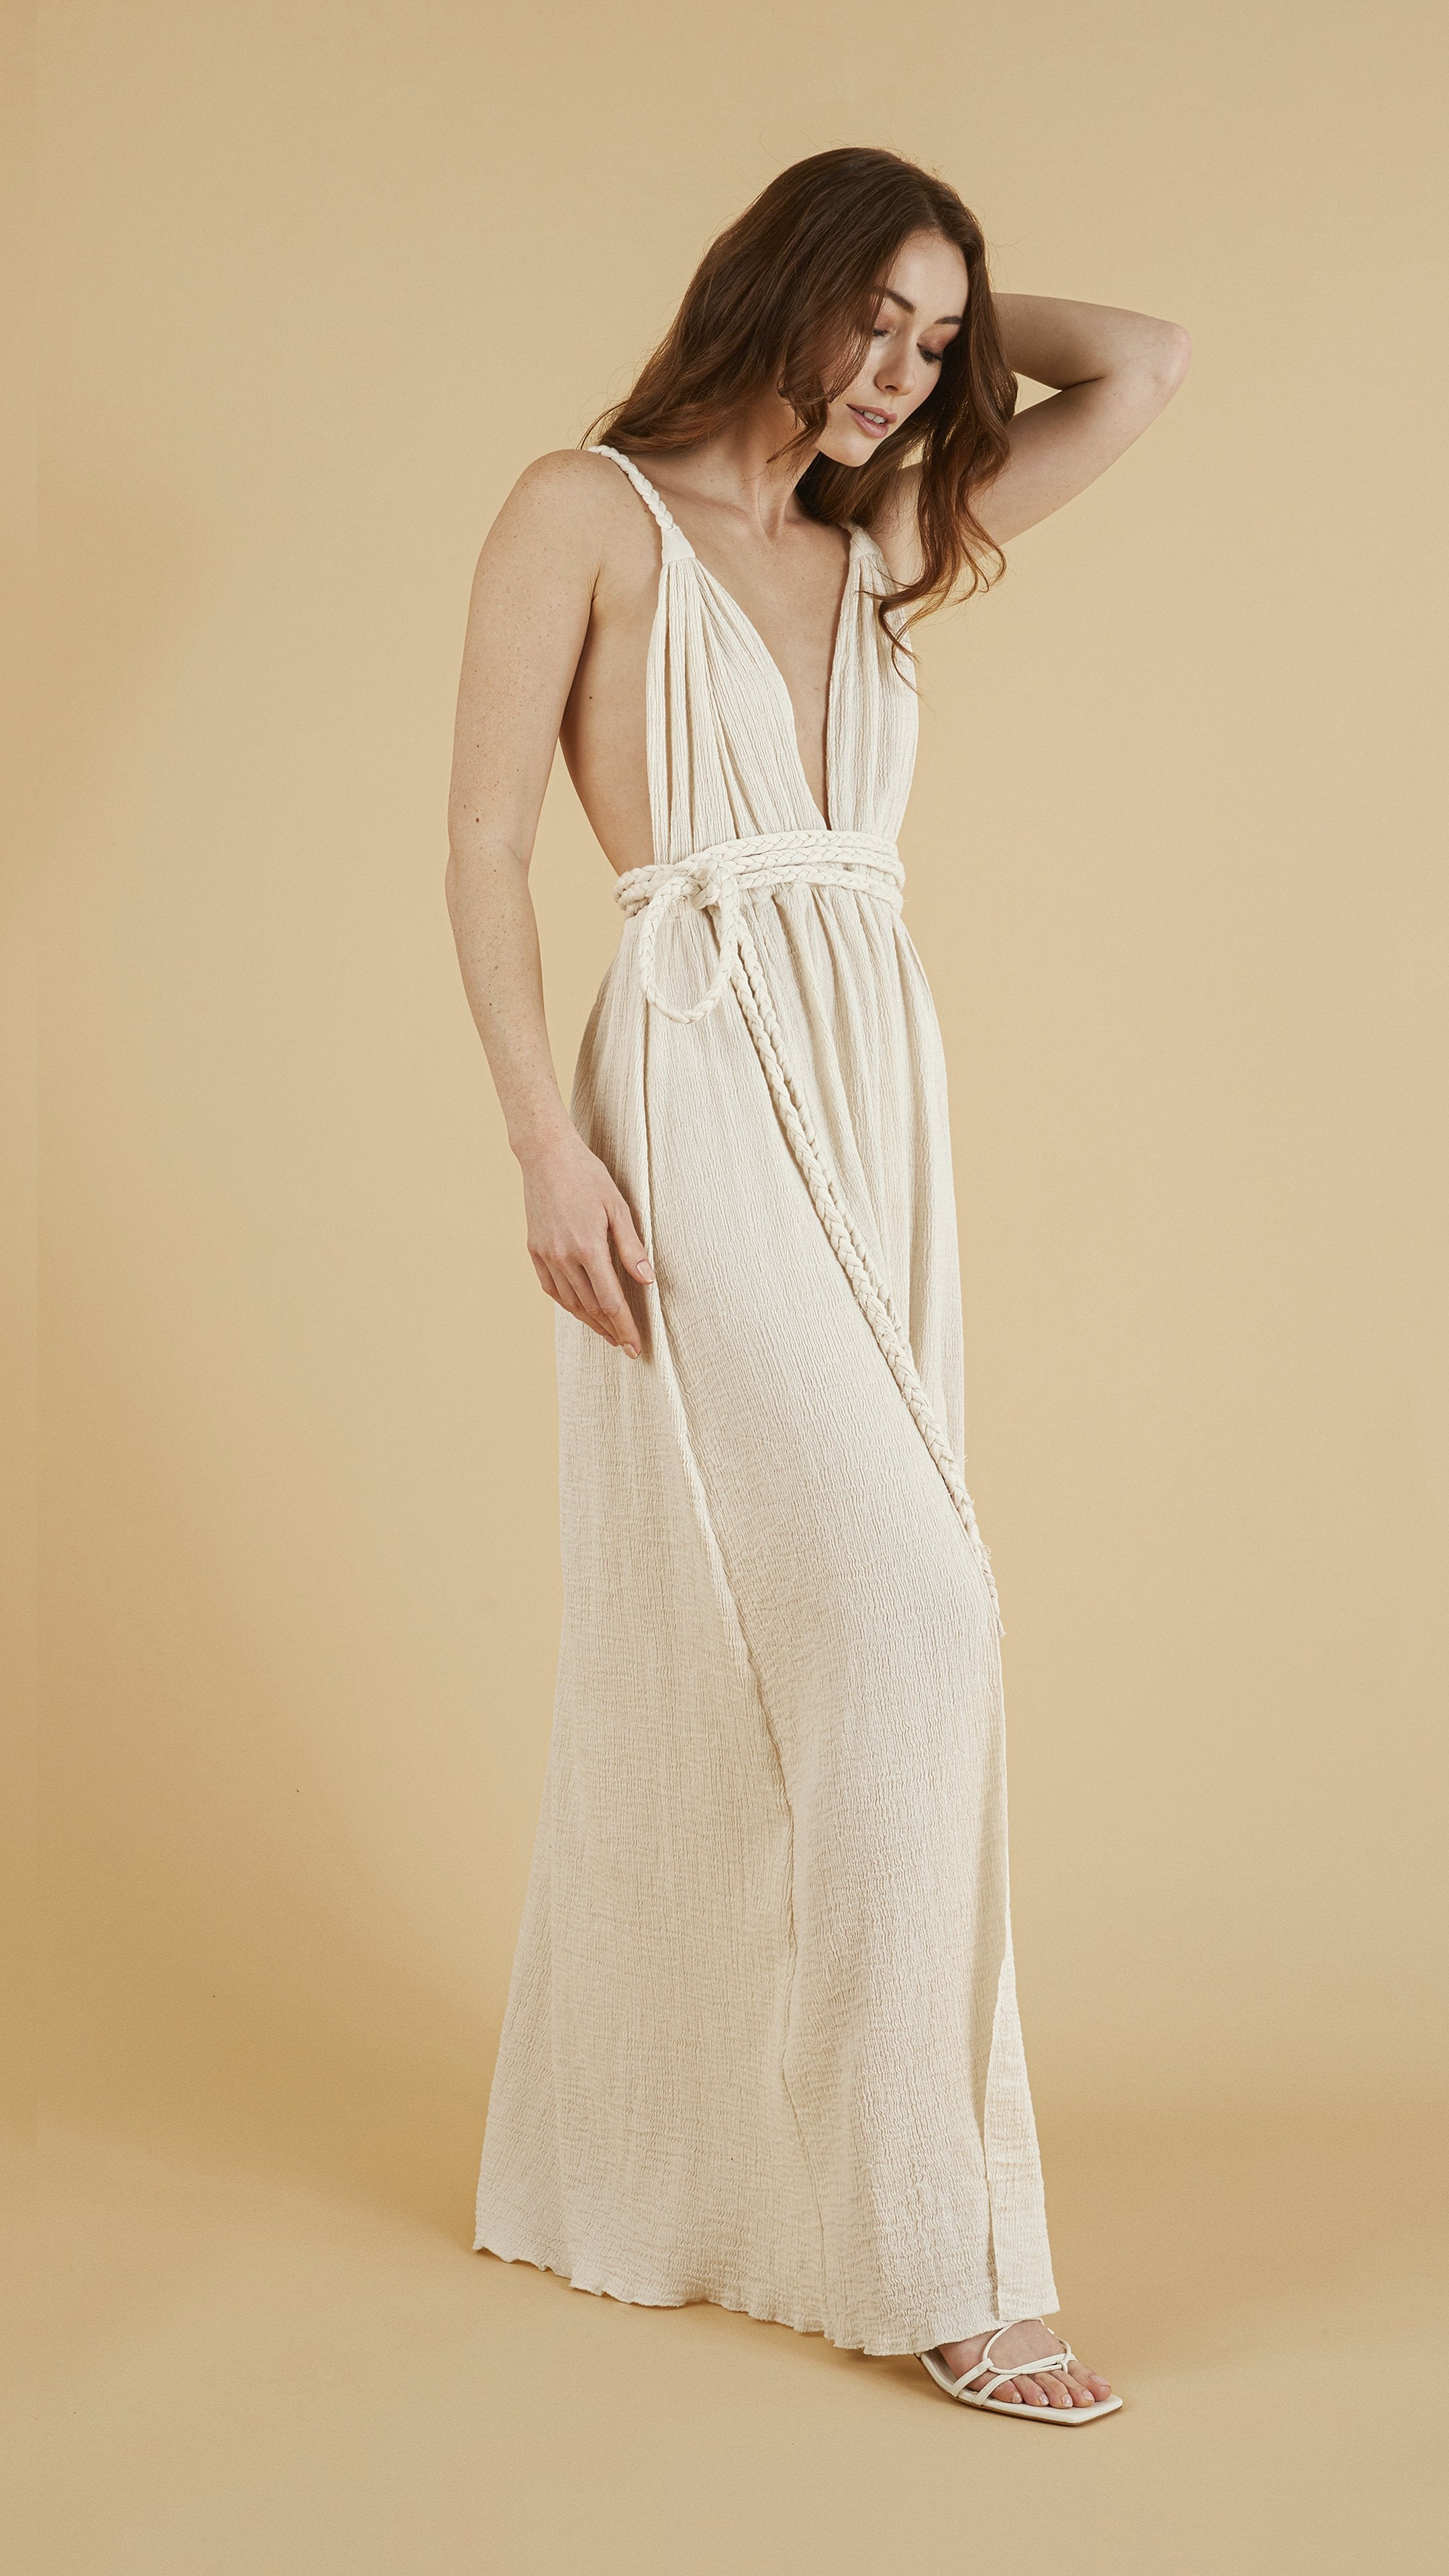 Full length - Muse Braided Strap Dress in Natural